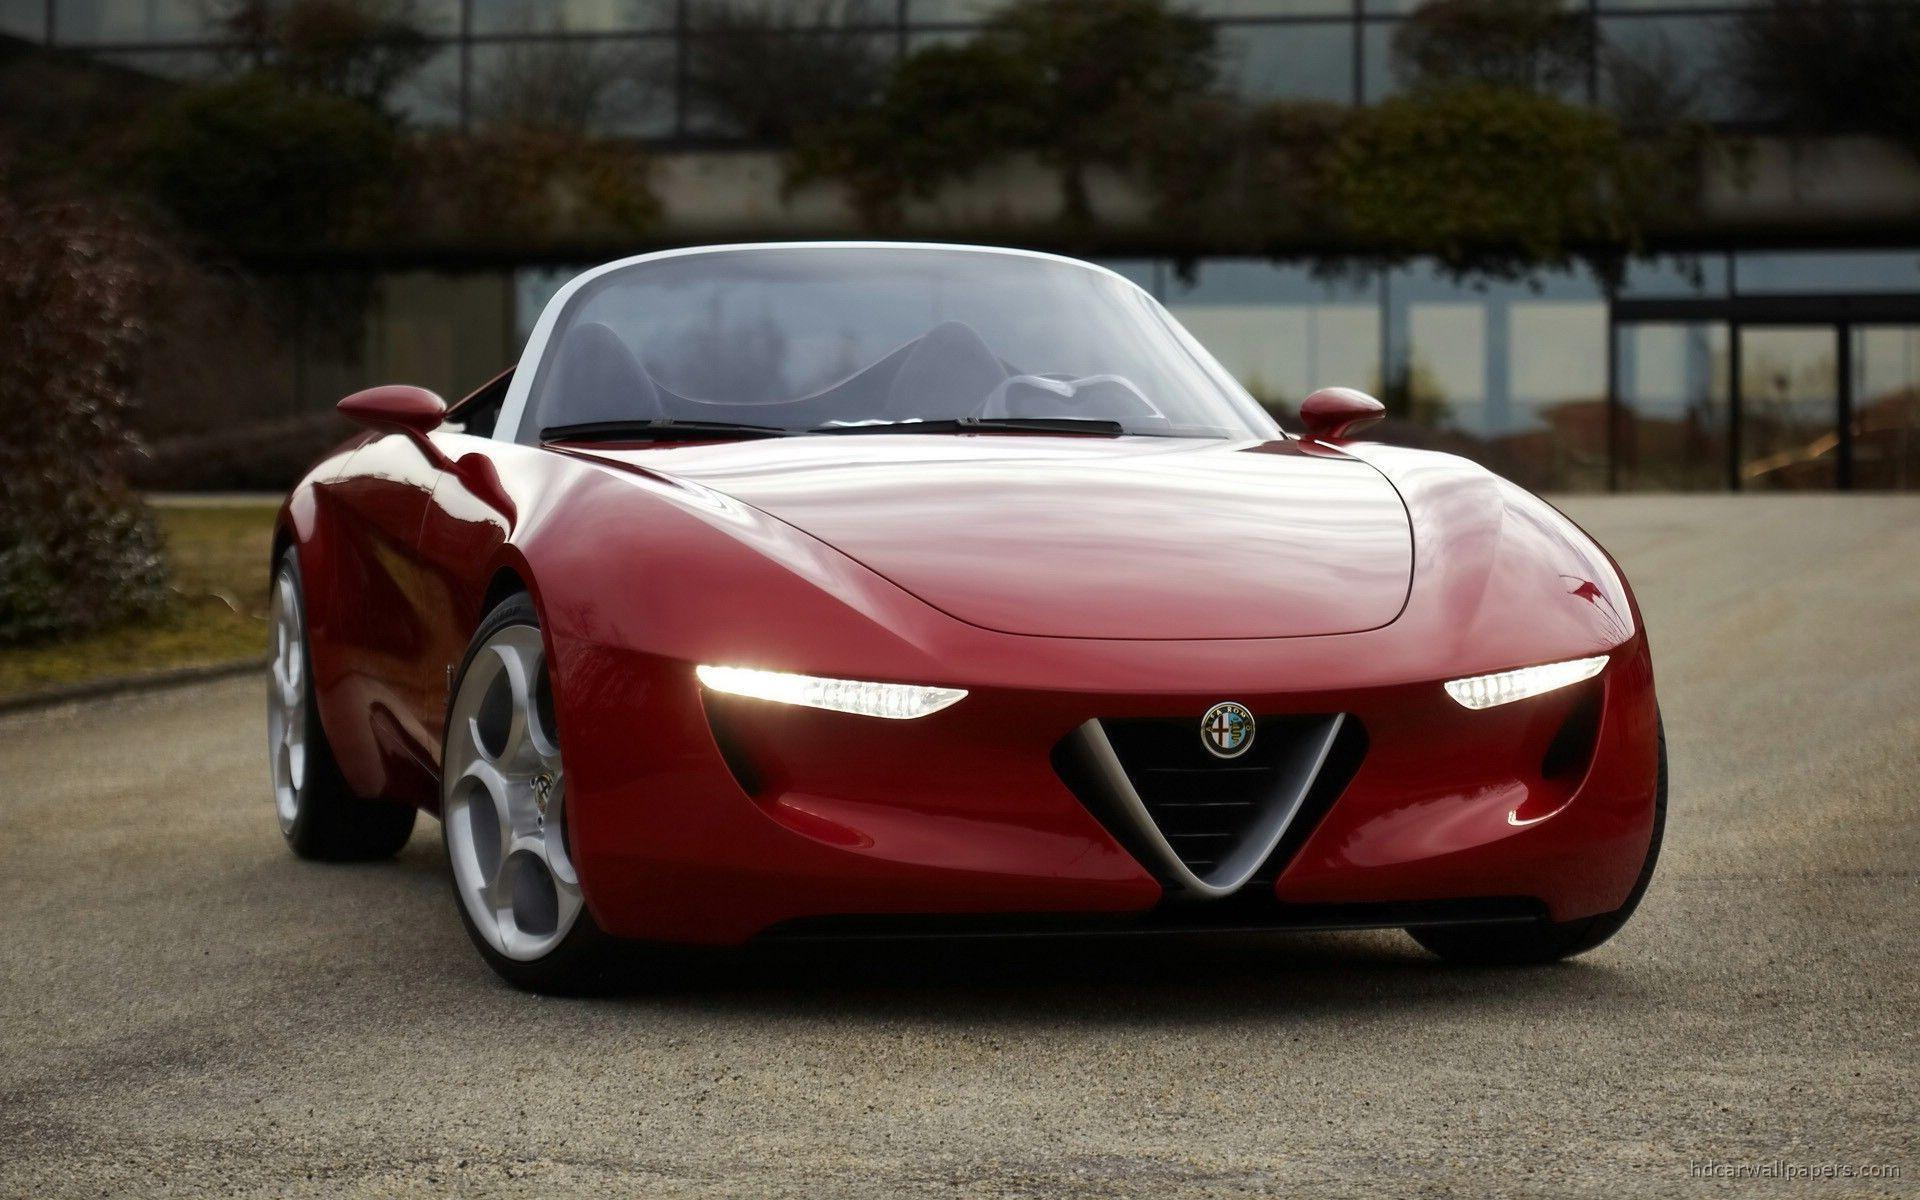 Alfa Romeo Super Car Wallpapers - HD Wallpapers Inn